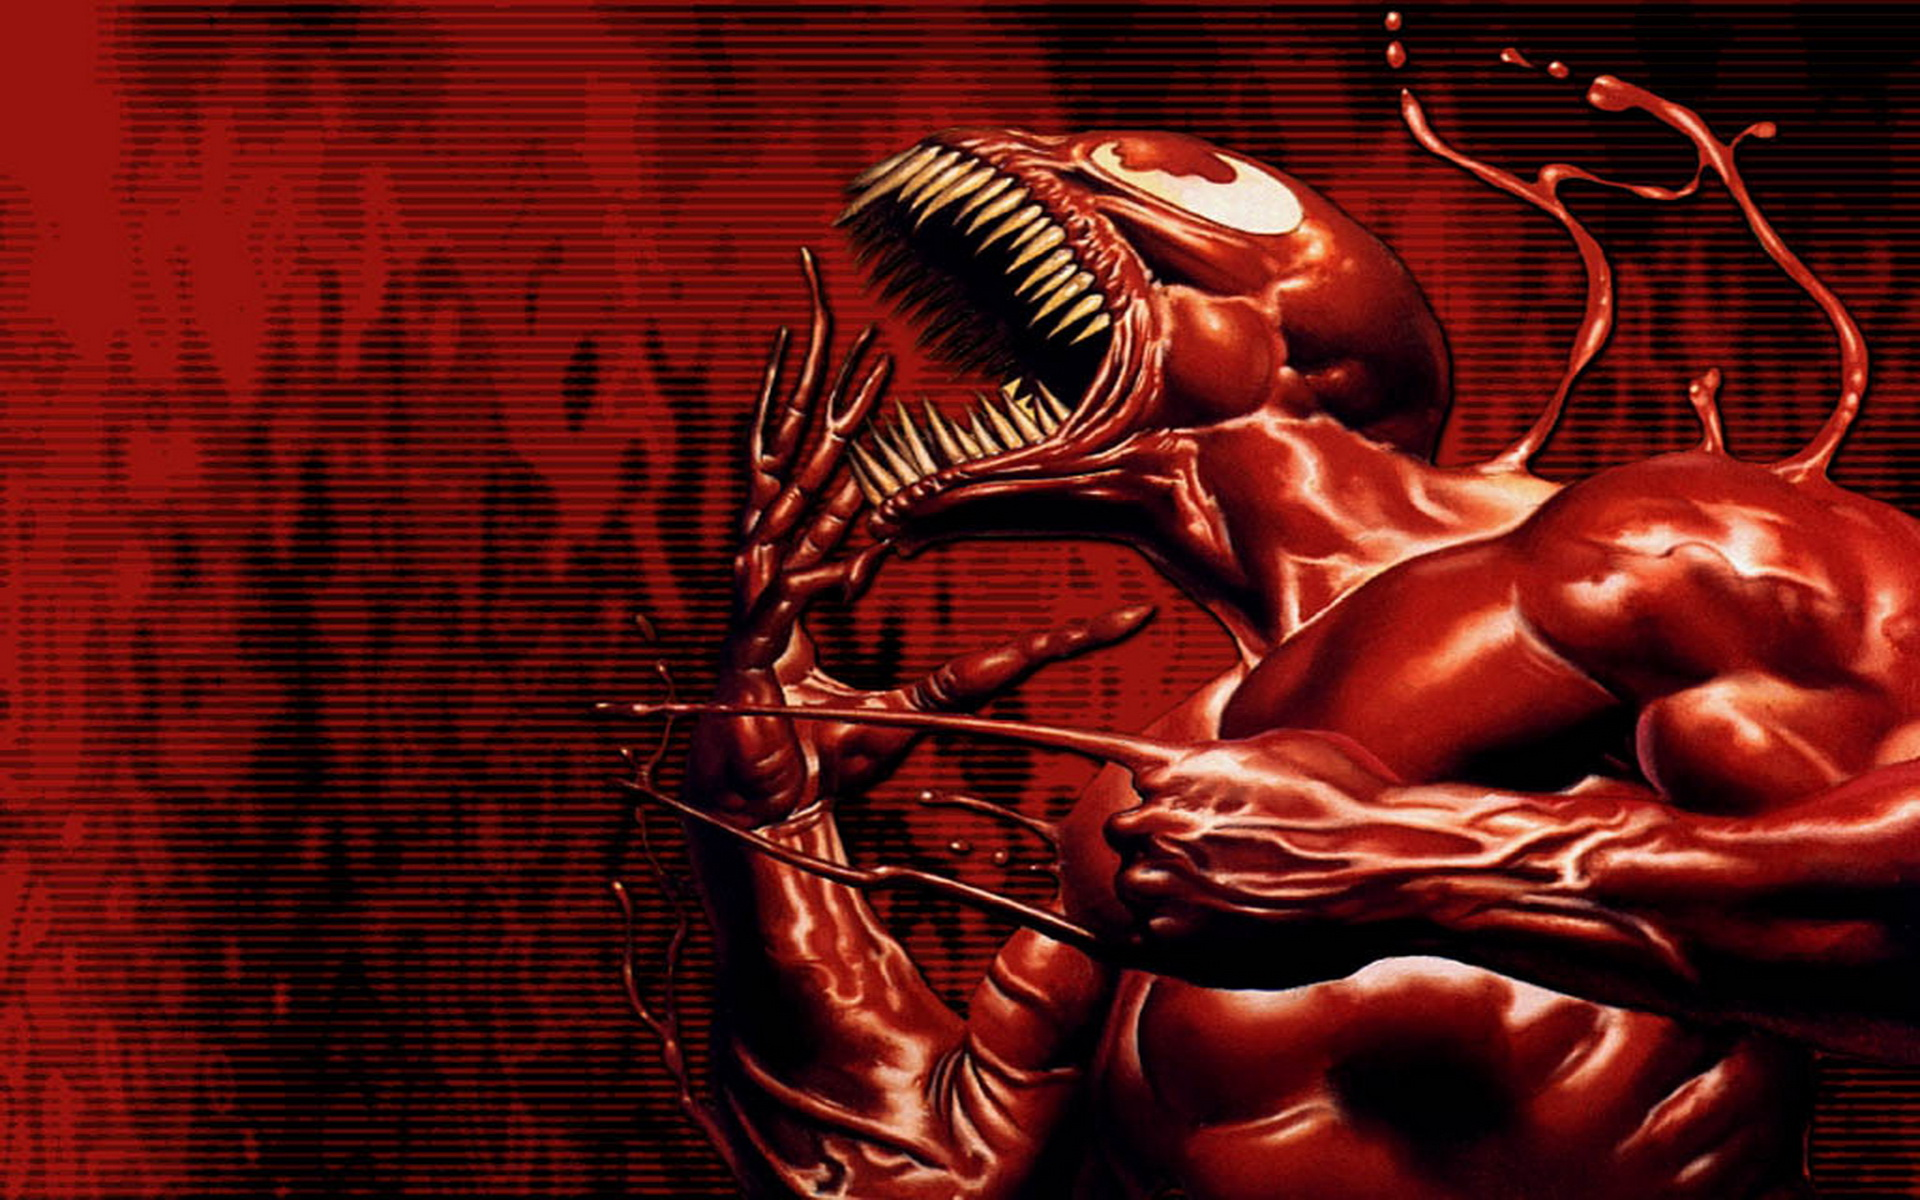 Carnage Wallpaper hd images 1920x1200